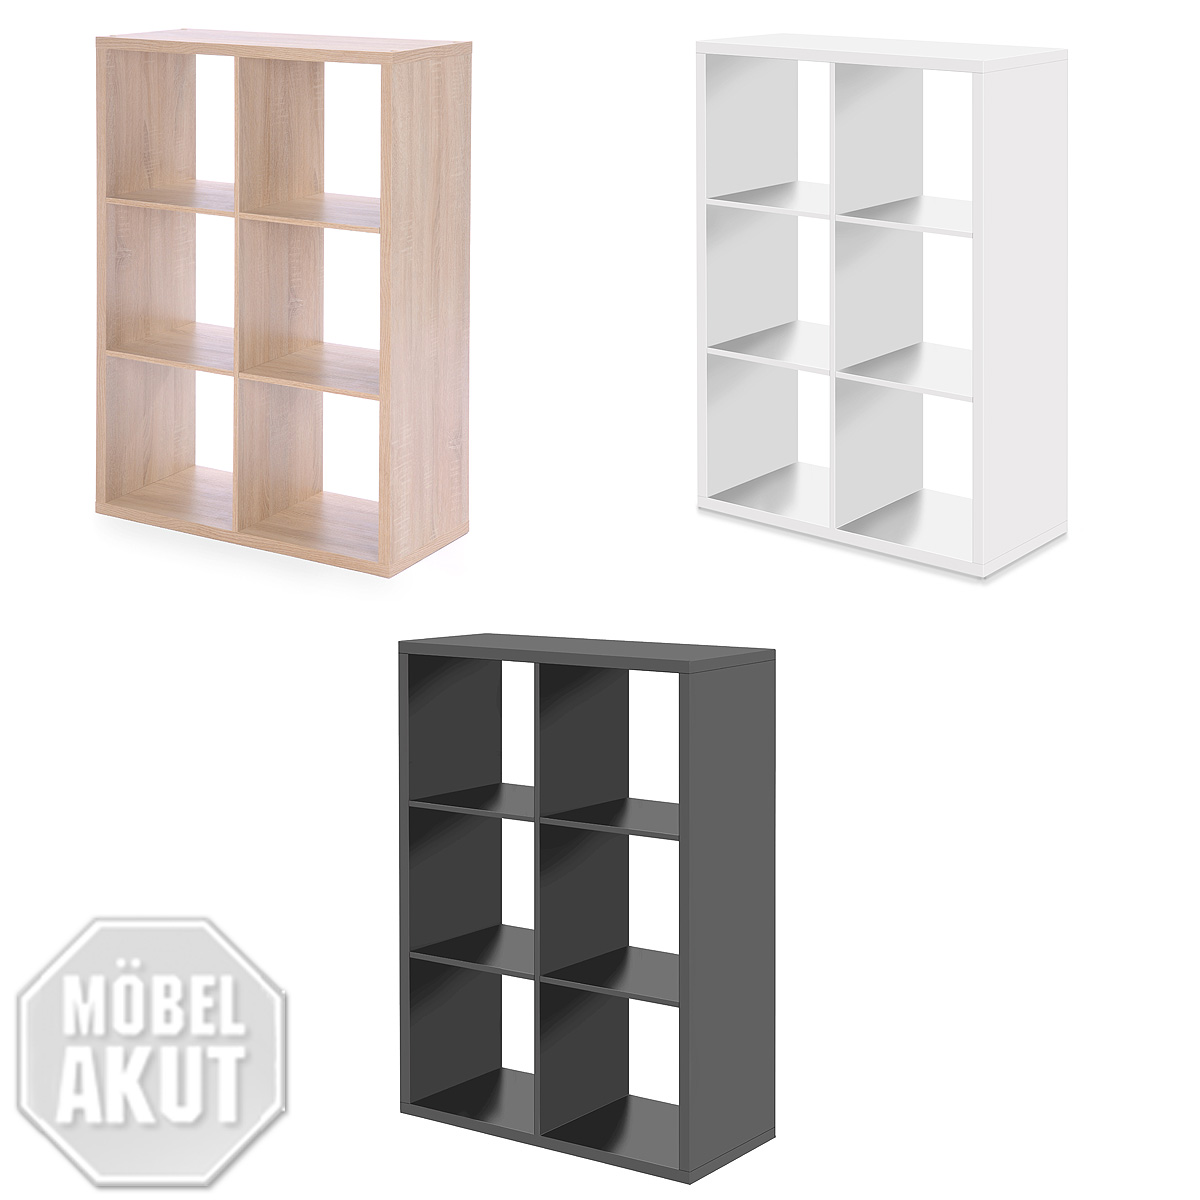 ikea schrank facher die neueste innovation der innenarchitektur und m bel. Black Bedroom Furniture Sets. Home Design Ideas